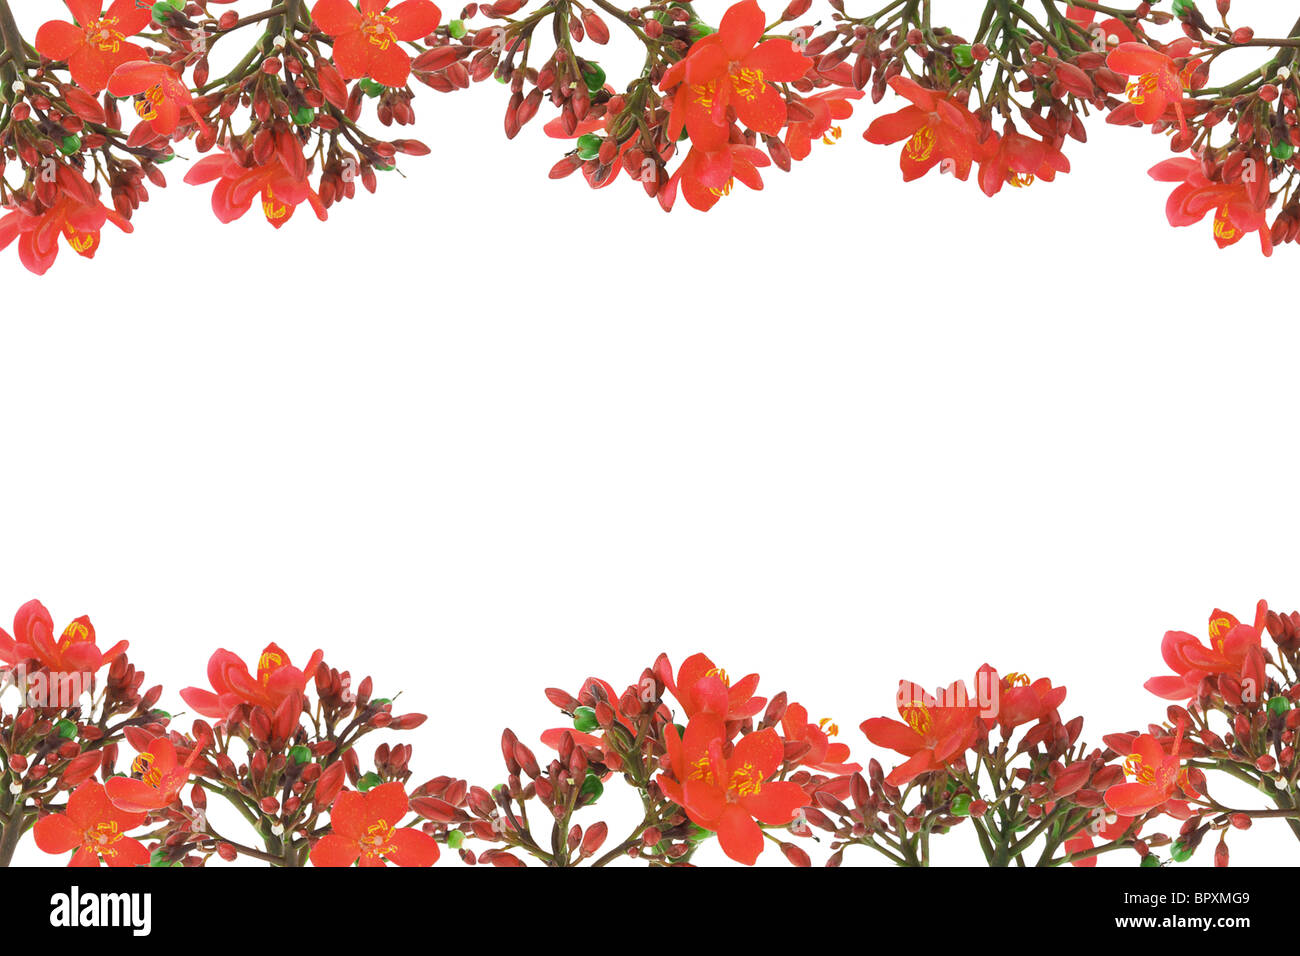 Red floral design border with copy space on white background - Stock Image